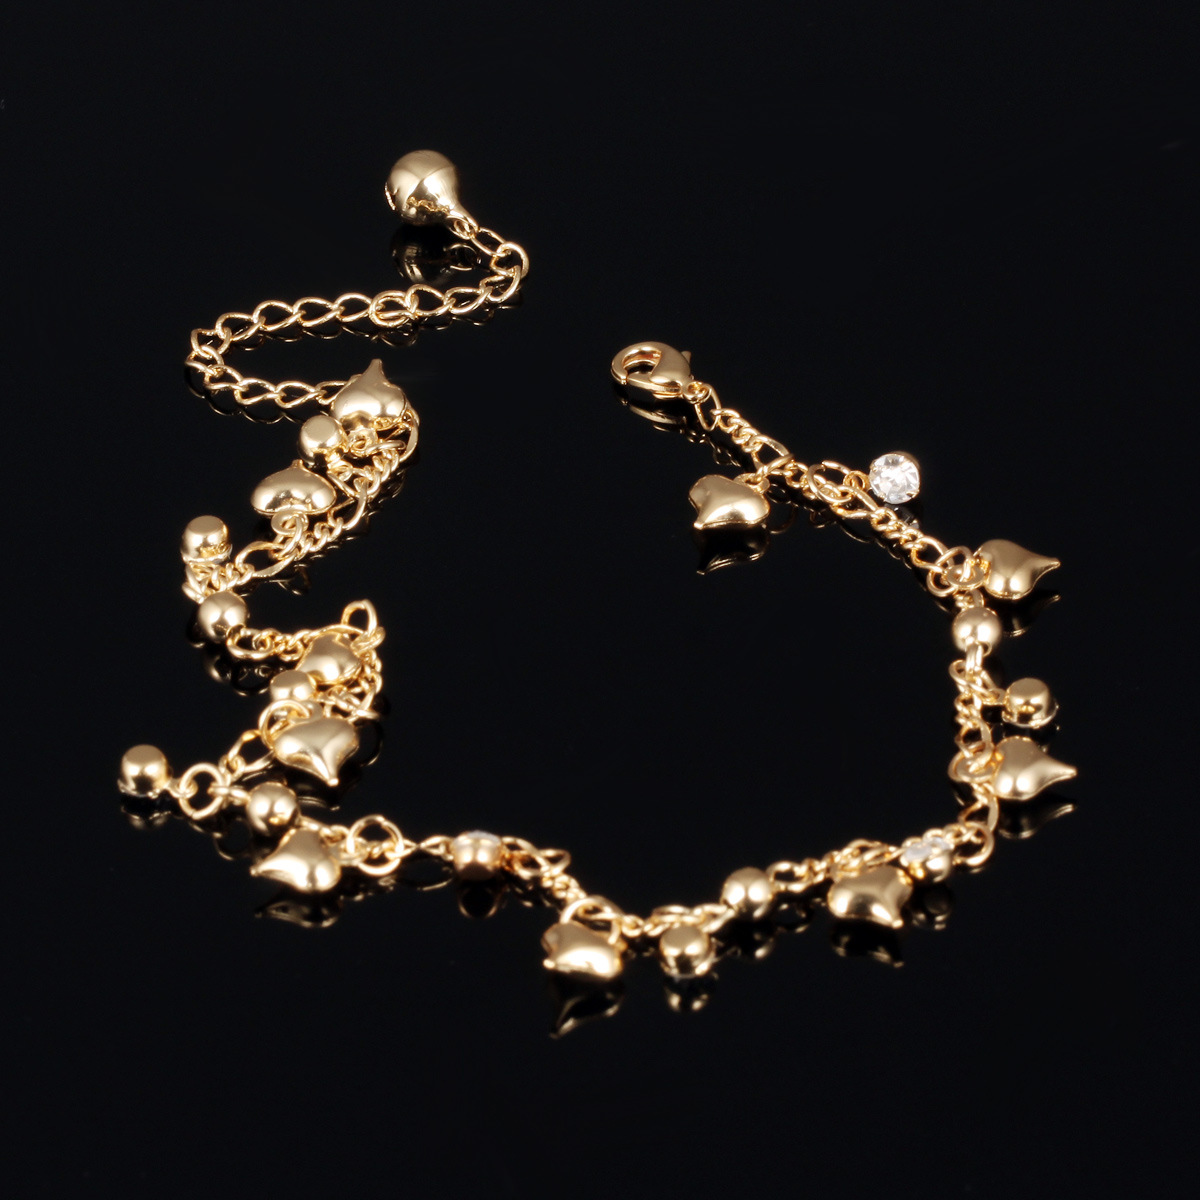 Fancy indian bell anklet heart charm chain anklets for women